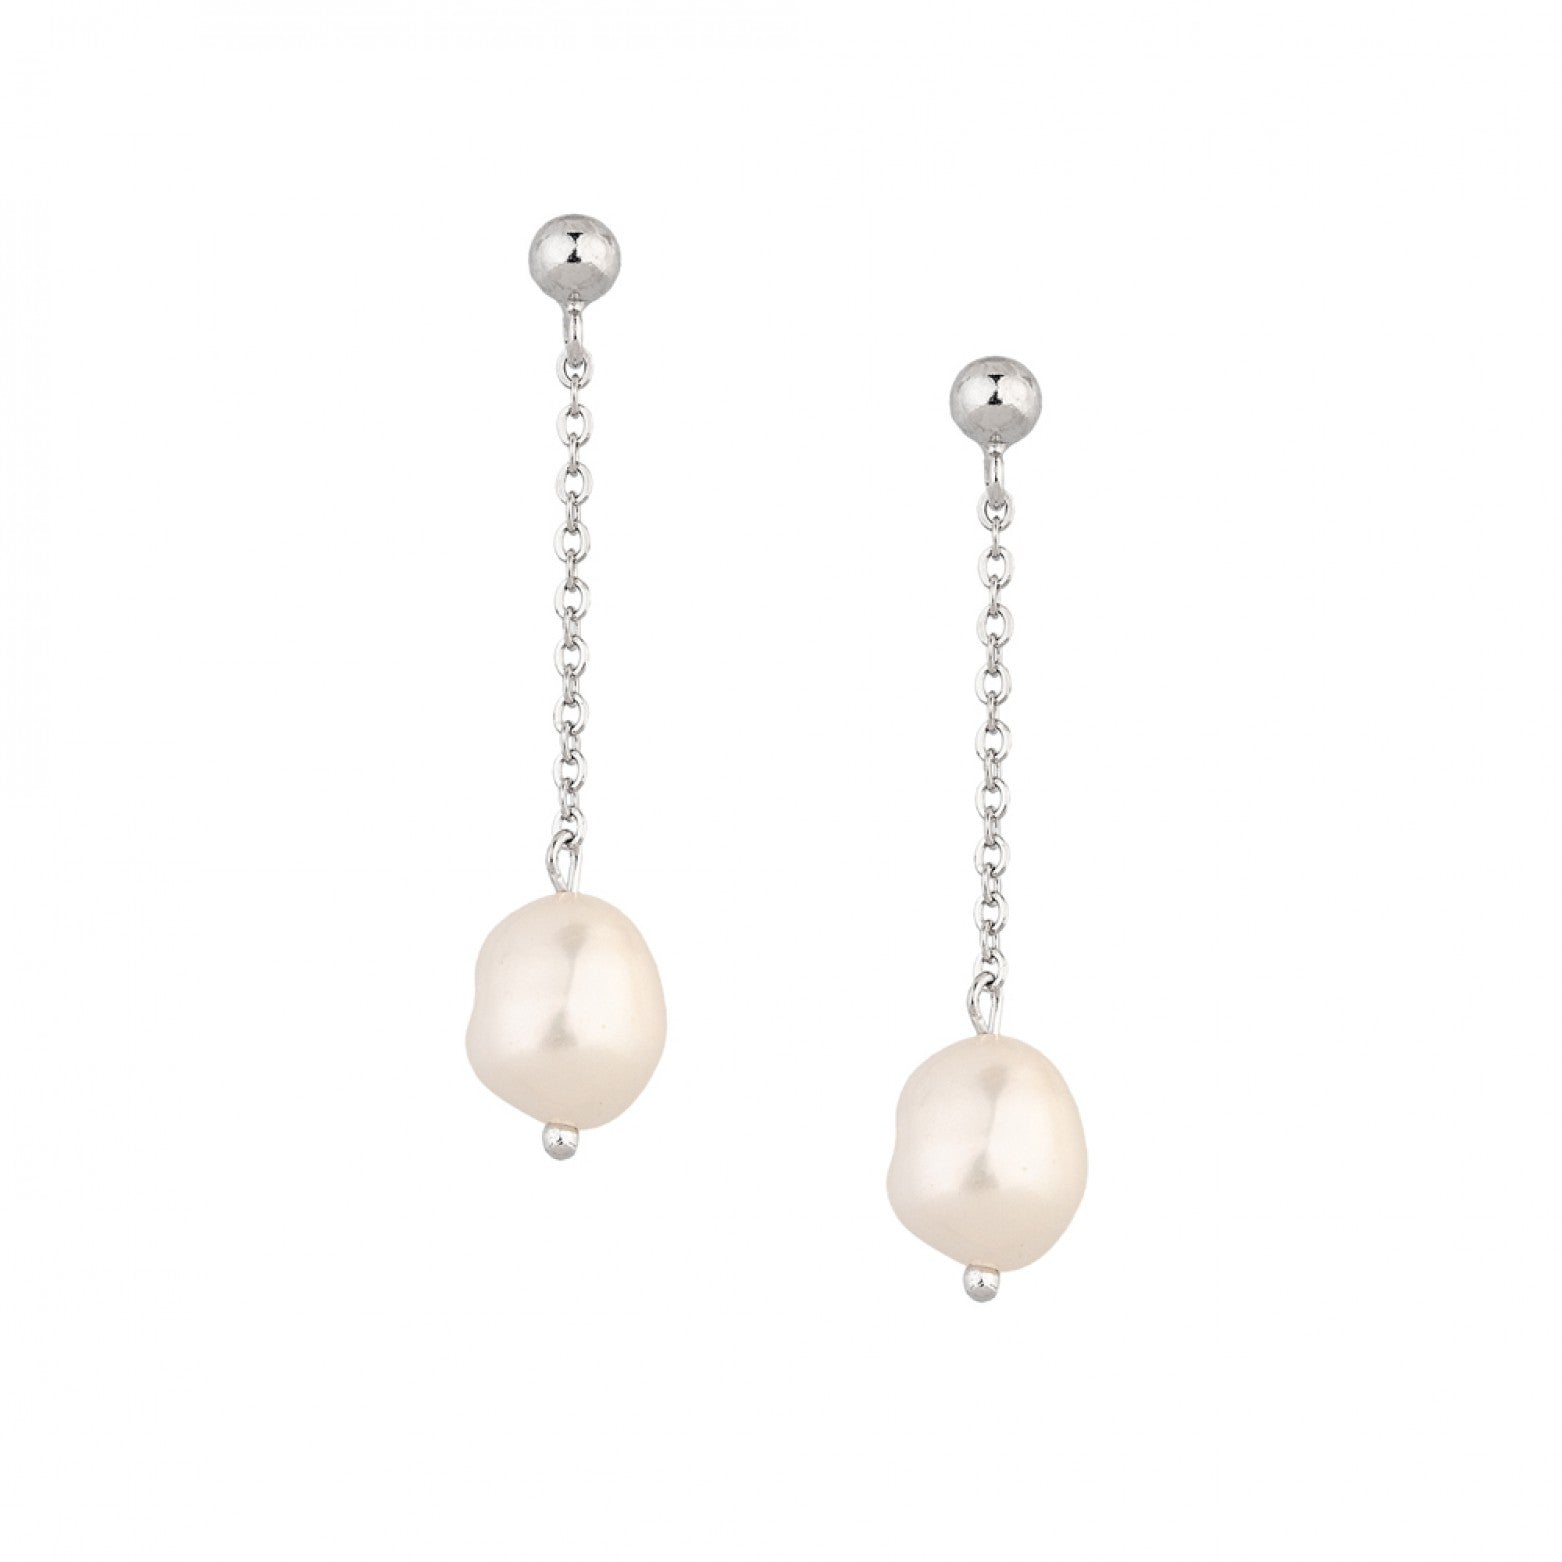 Sterling Silver 925o Hanging Pearls